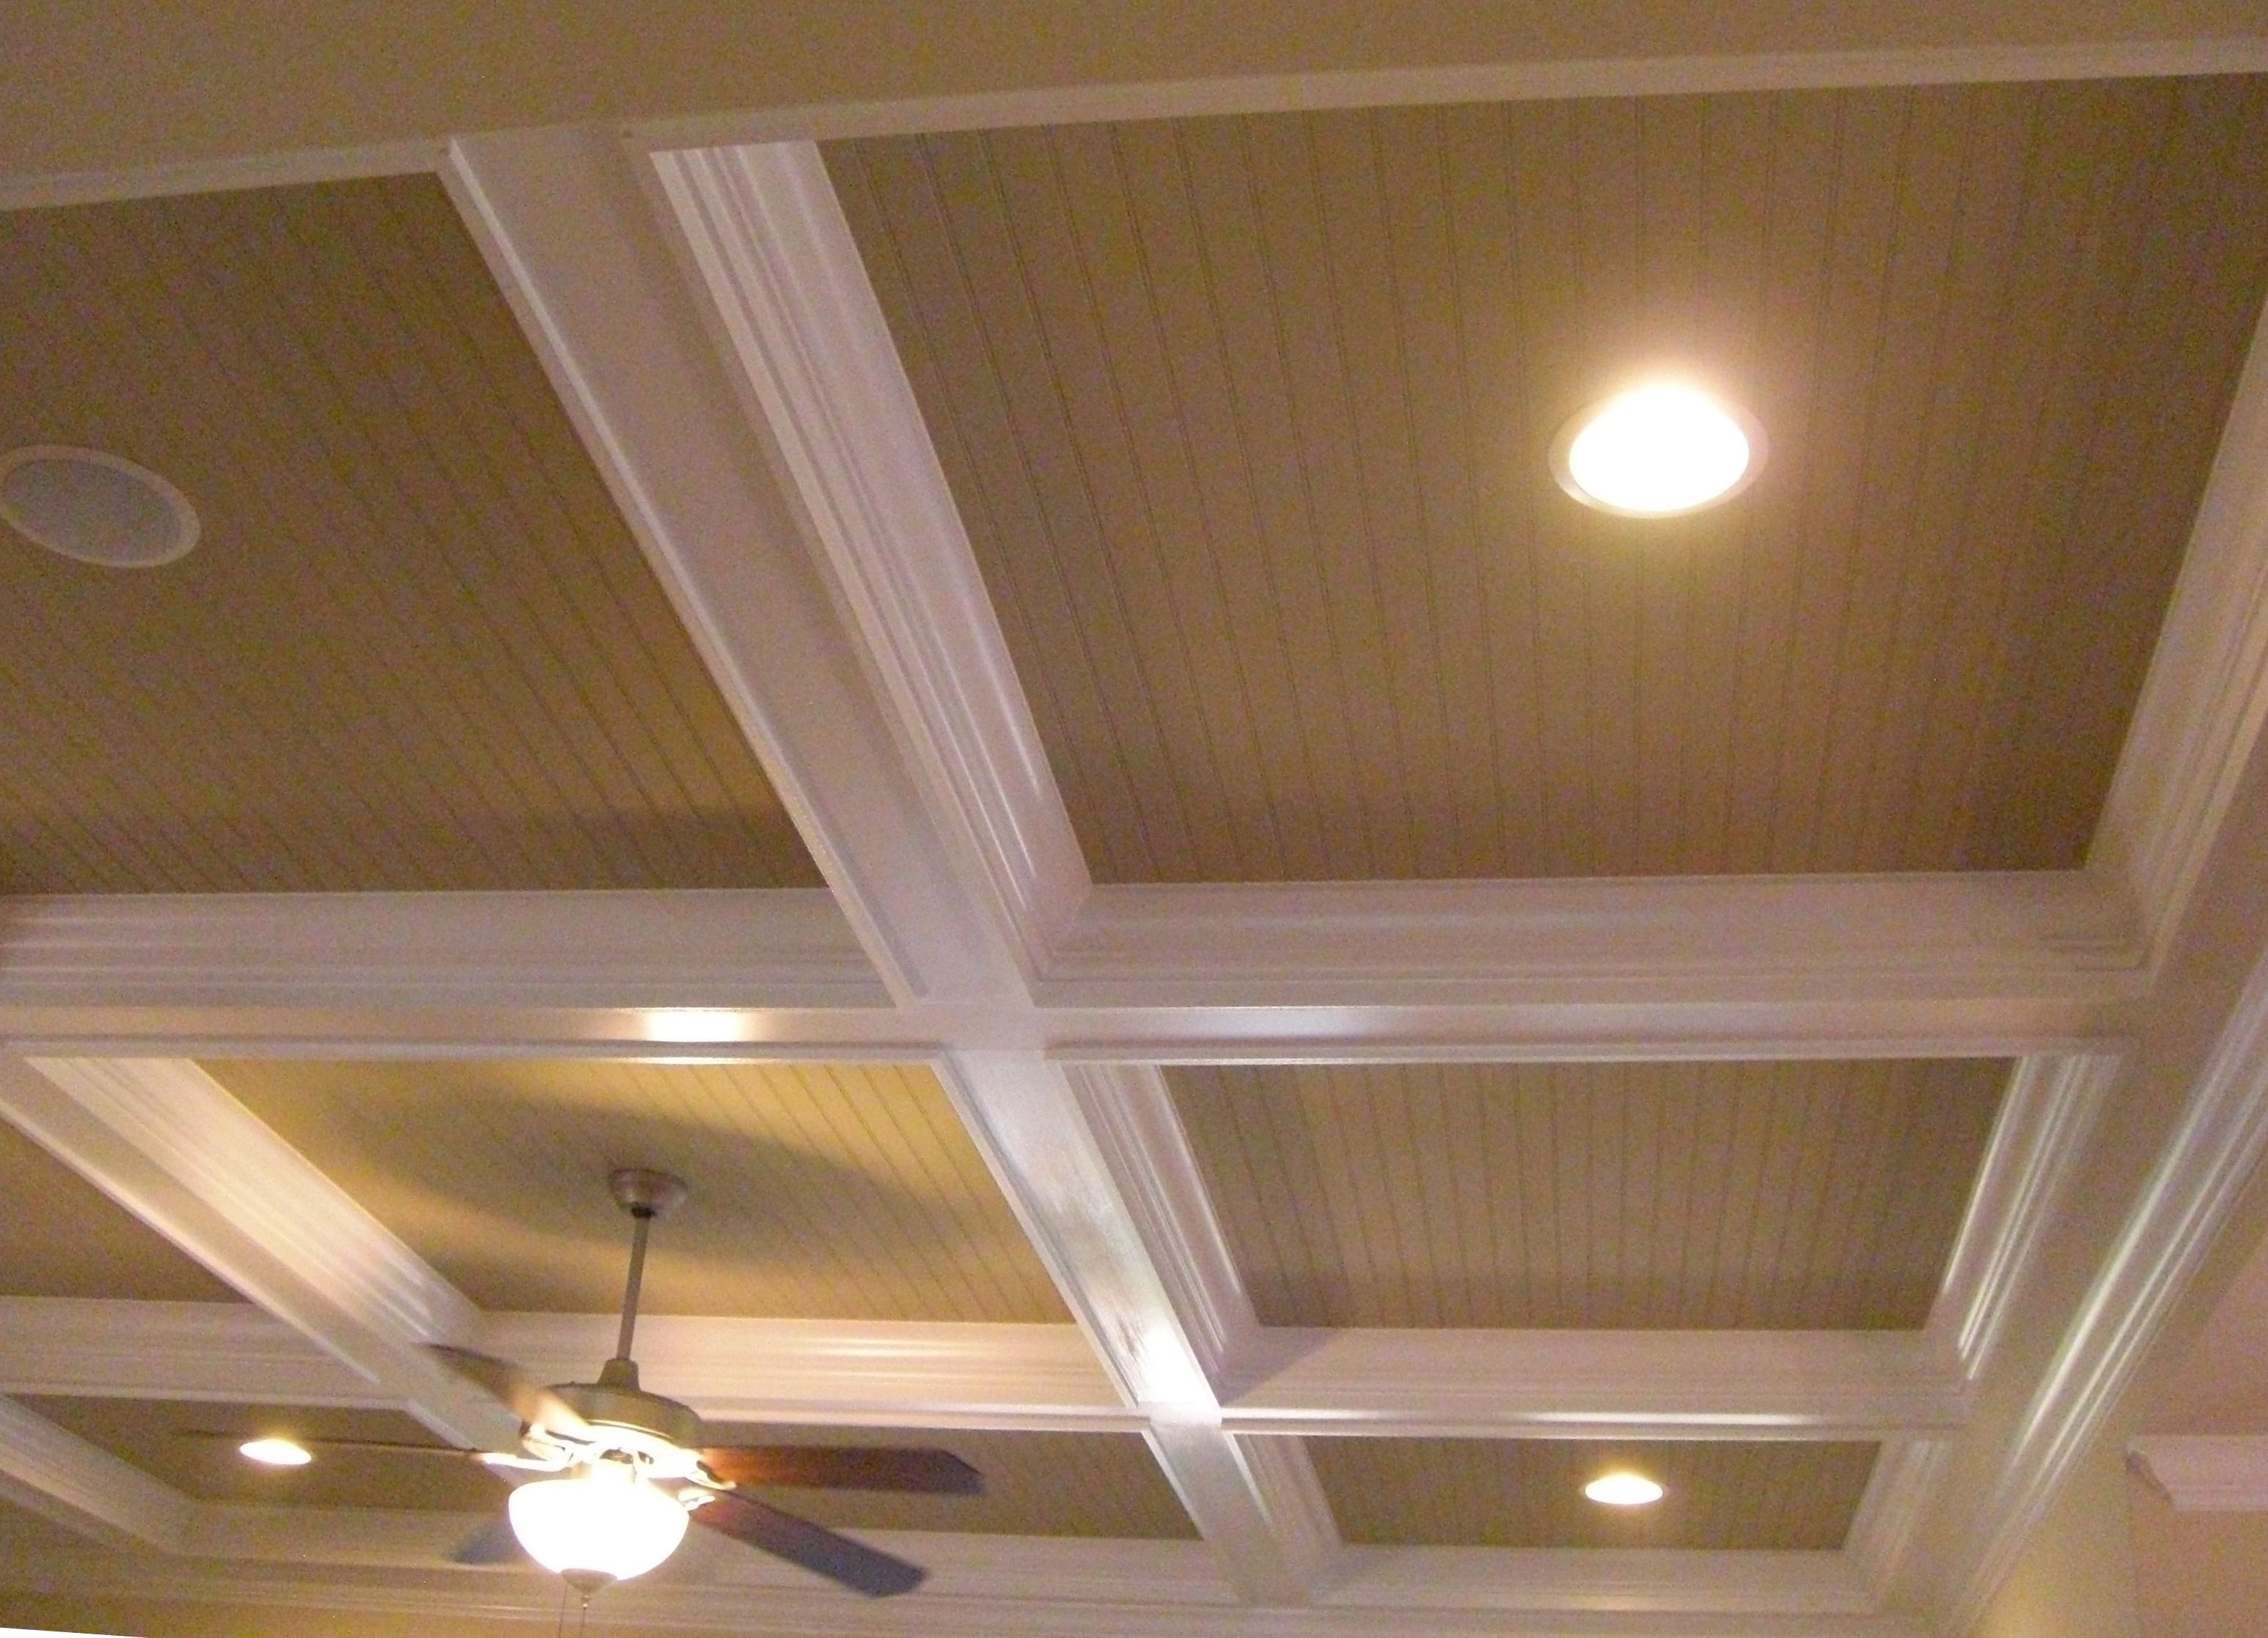 Decorative Ceiling Discs Beadboard In Coffered Ceiling Lights And Built In